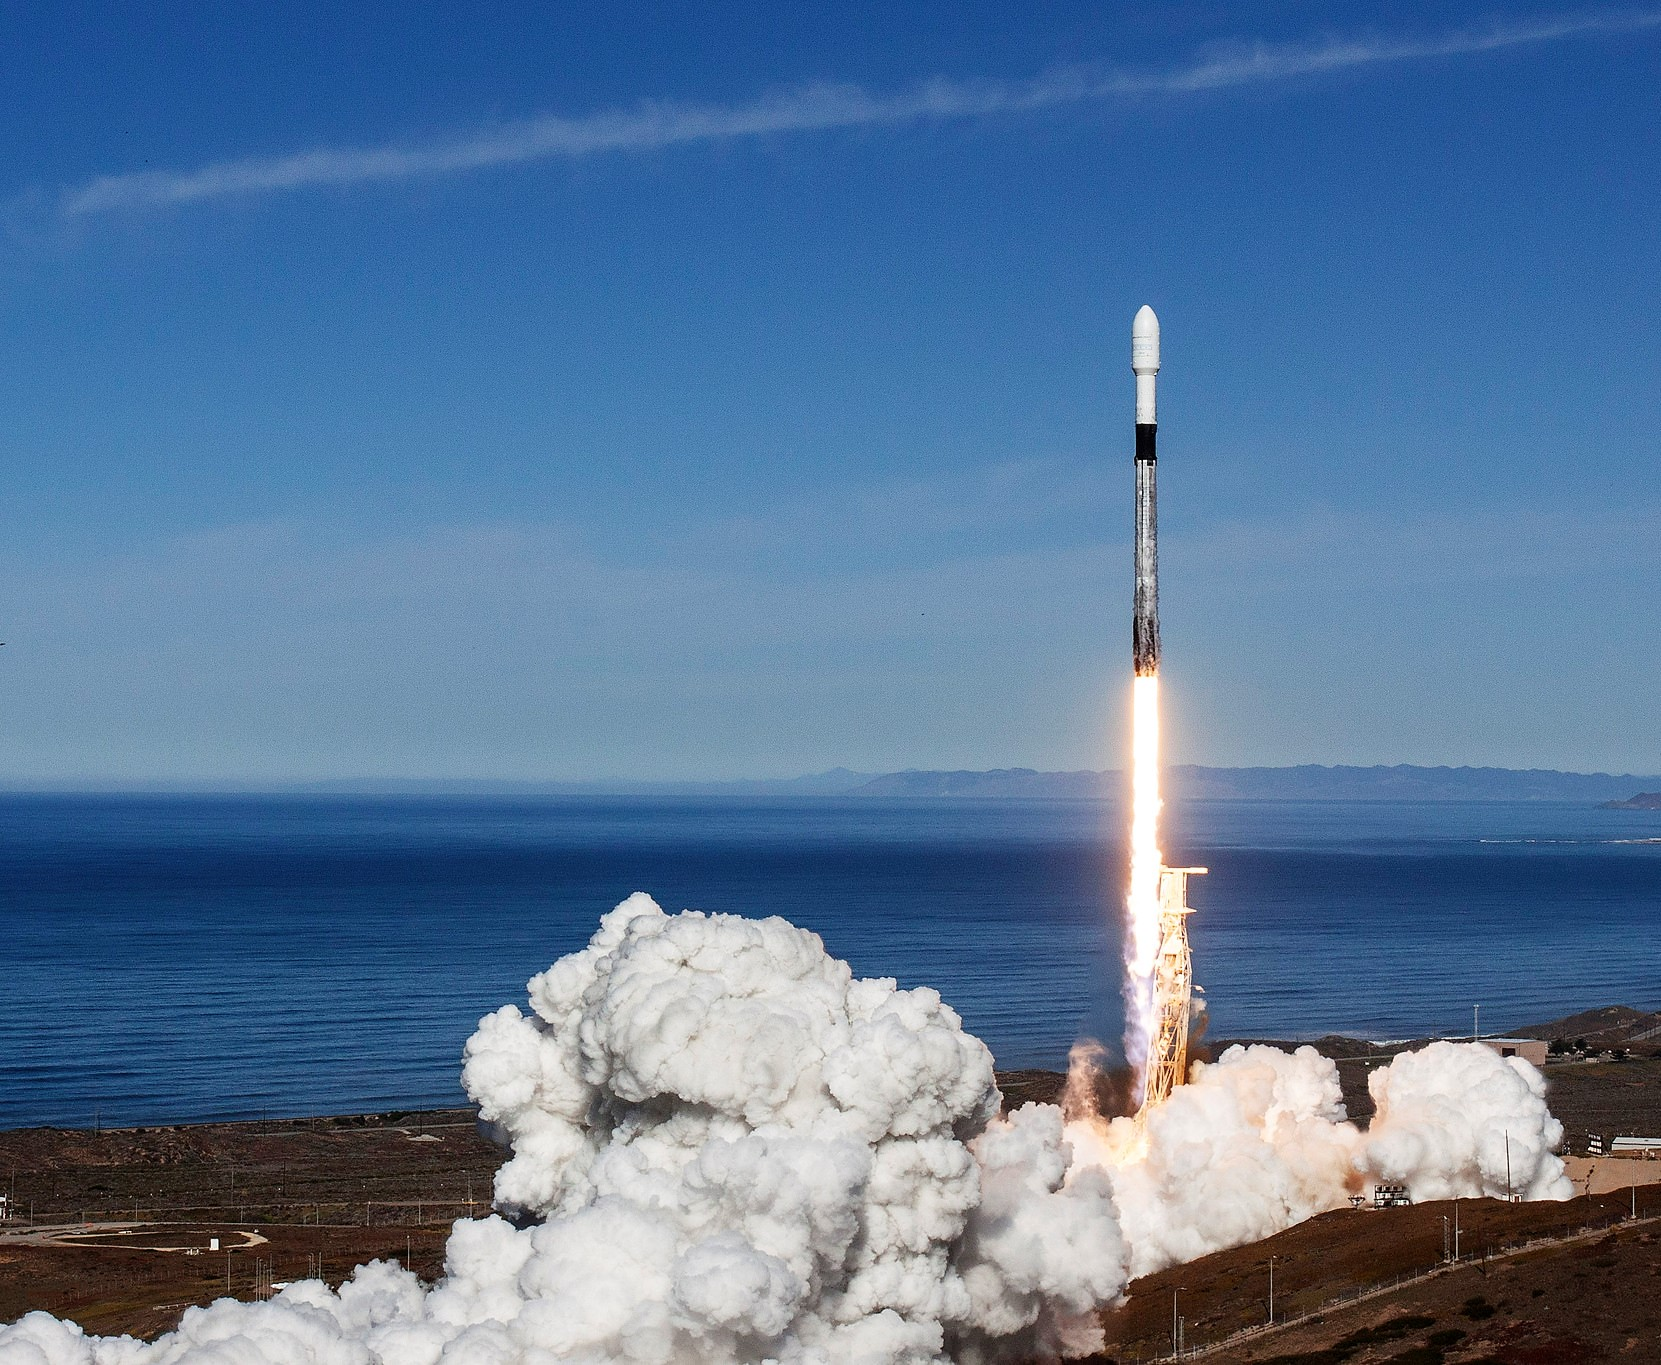 Spacex Launches Falcon 9 Rocket For Spaceflight And 64 Satellite Flock Geekwire